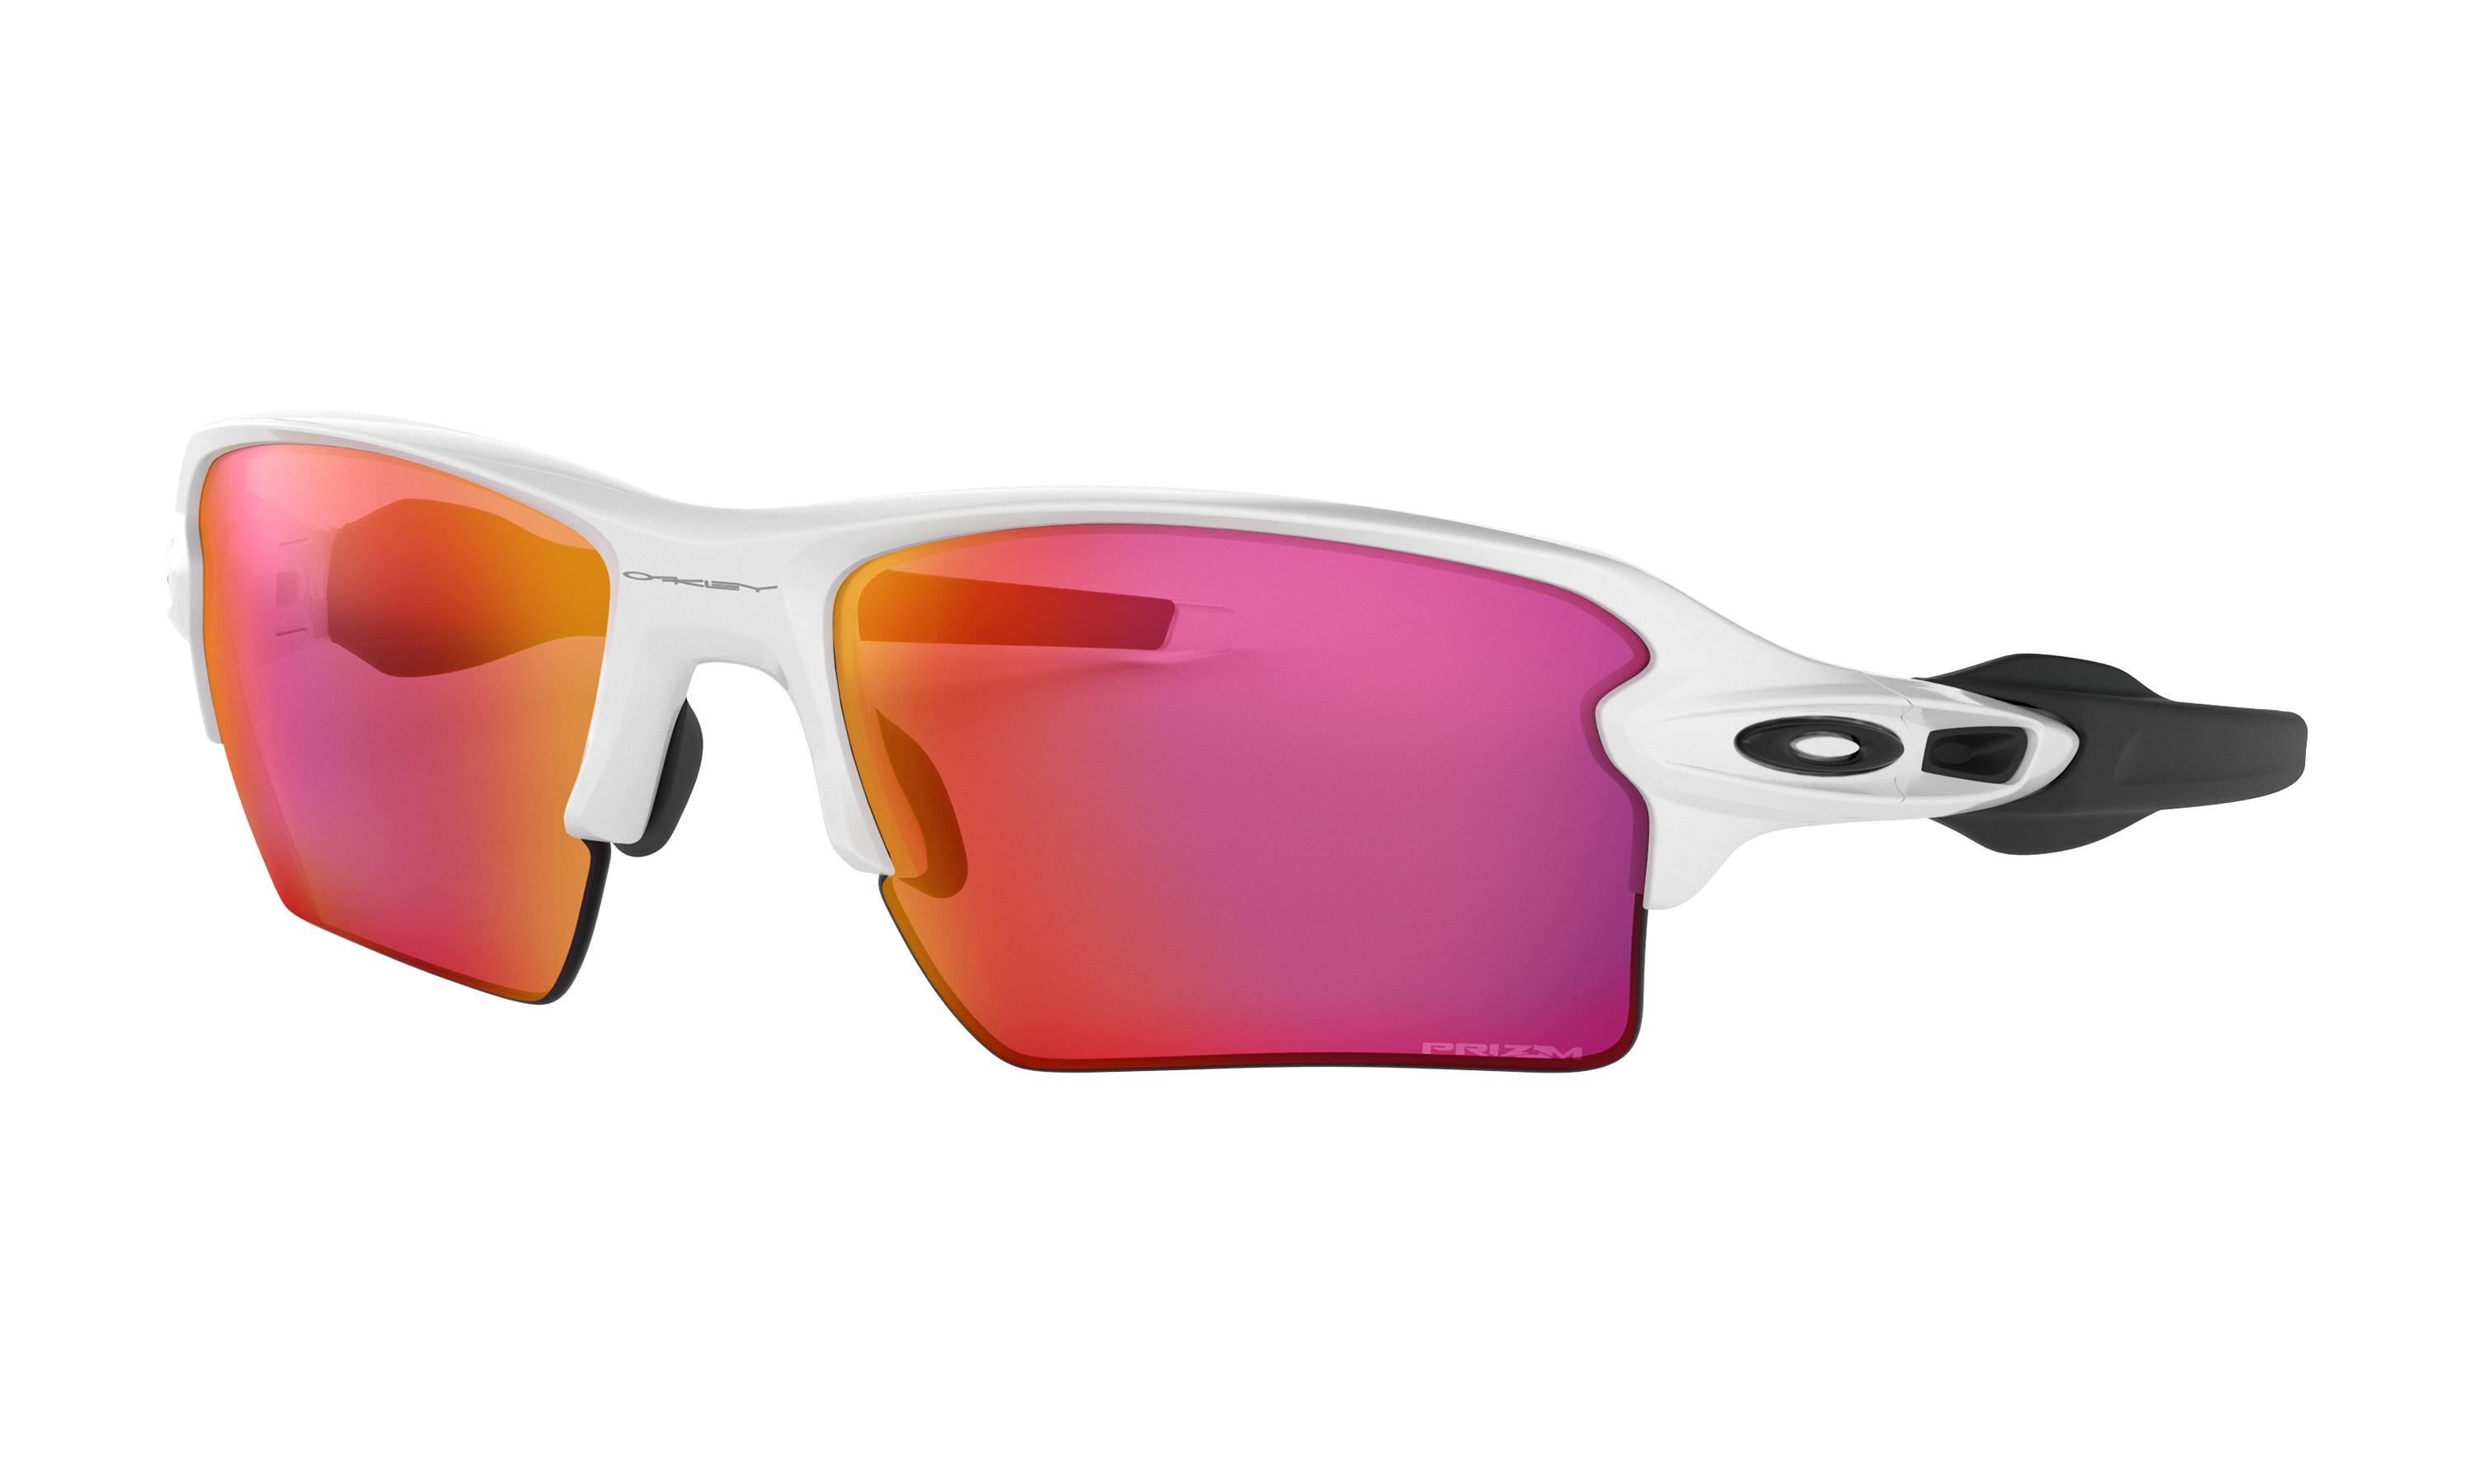 331953d2d2306 Oakley® Flak 2.0 XL - PRIZM Prescription Available